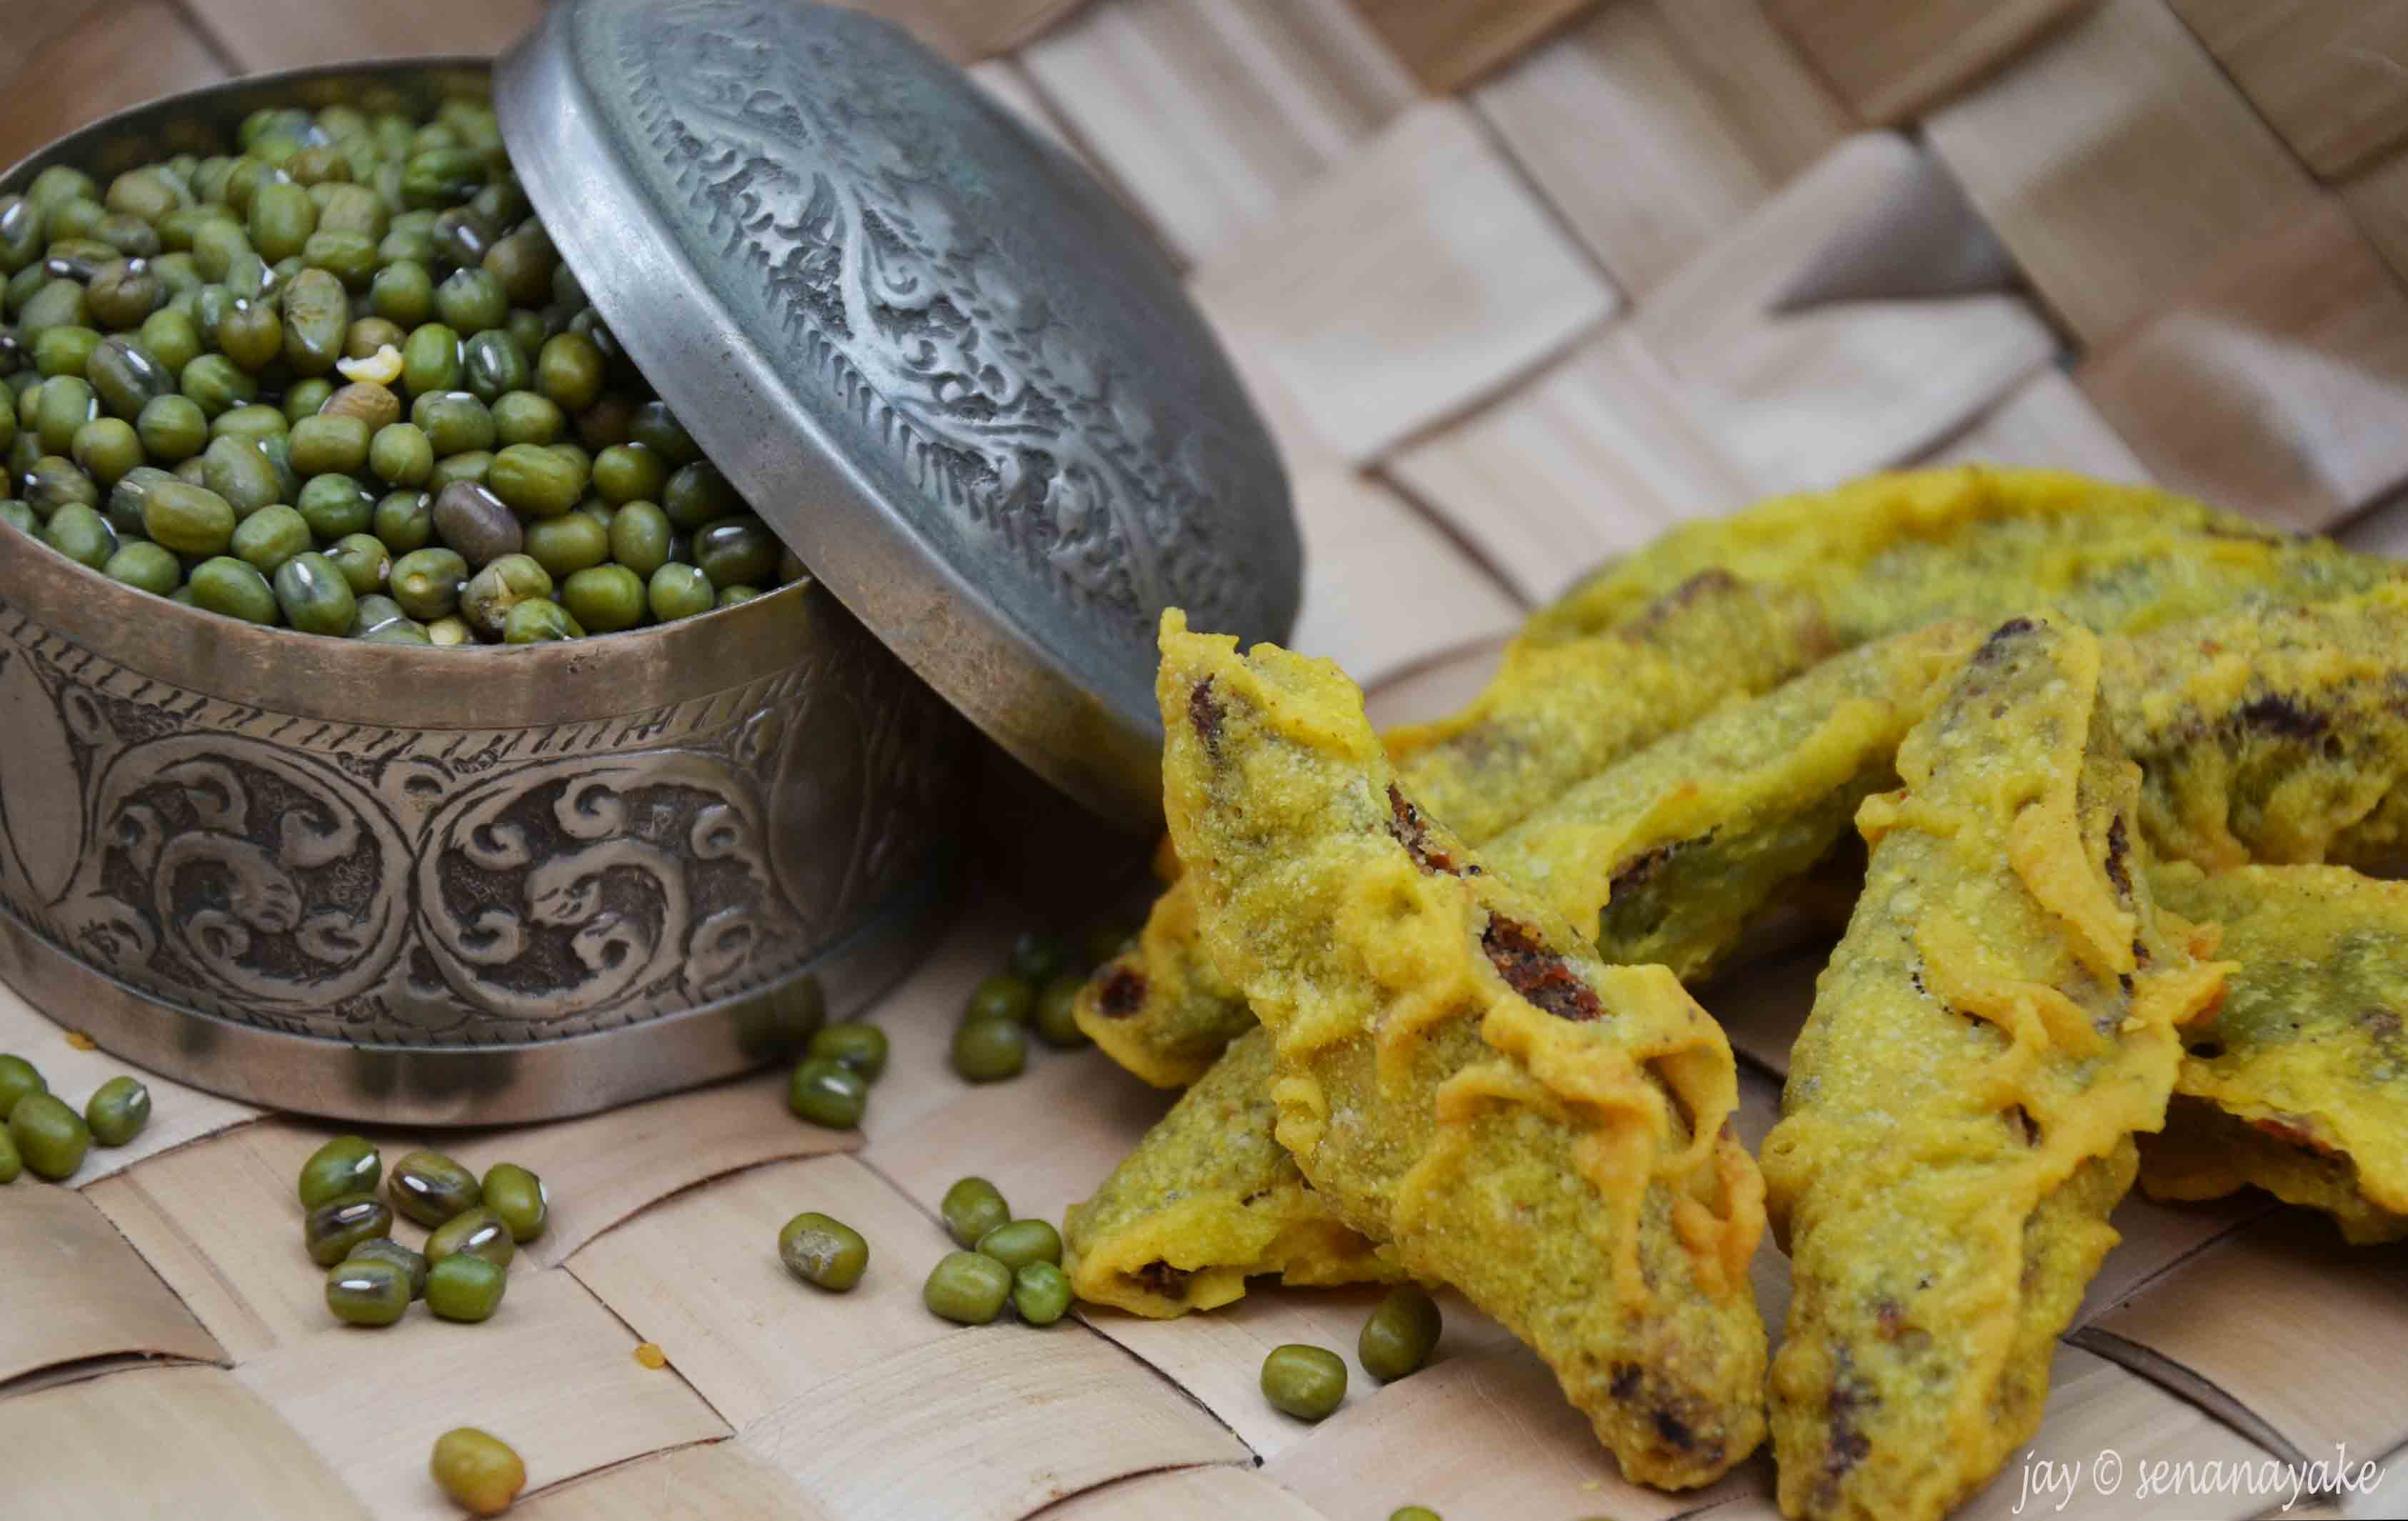 Sinhala and tamil new year greet avurudu with sri lankan food mung kevum forumfinder Image collections